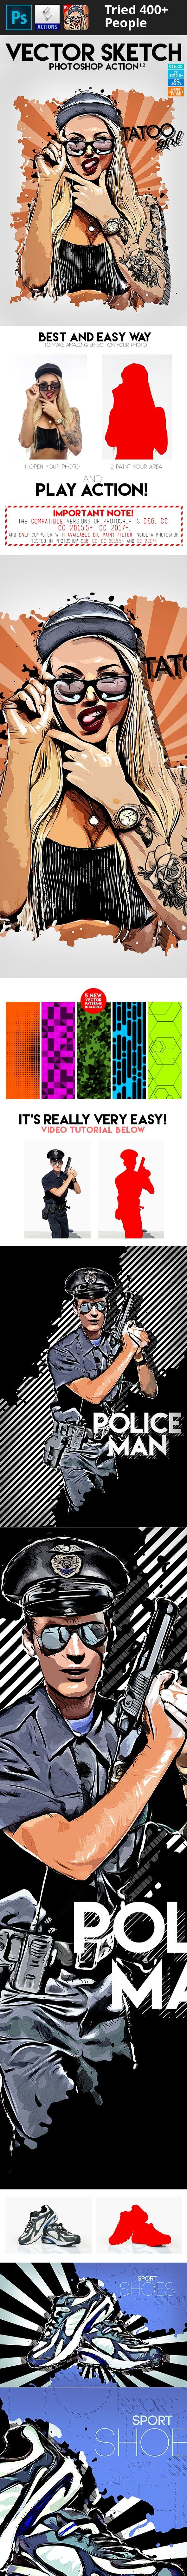 abstract, action, art, artistic, design, digital, draw, drawing, effect, hand drawn, illustrator, object, pen, pencil, photo to vector, photography, photoshop, professional, sketch, speedpainting, style, technical, template, vector Vector Sketch turns your photo into a Vector composition. Action contains 10 color FX. Save hours of work with this action. After action finish the work you get a well-organized and structured file with the many layers, folders and settings to improve the ...